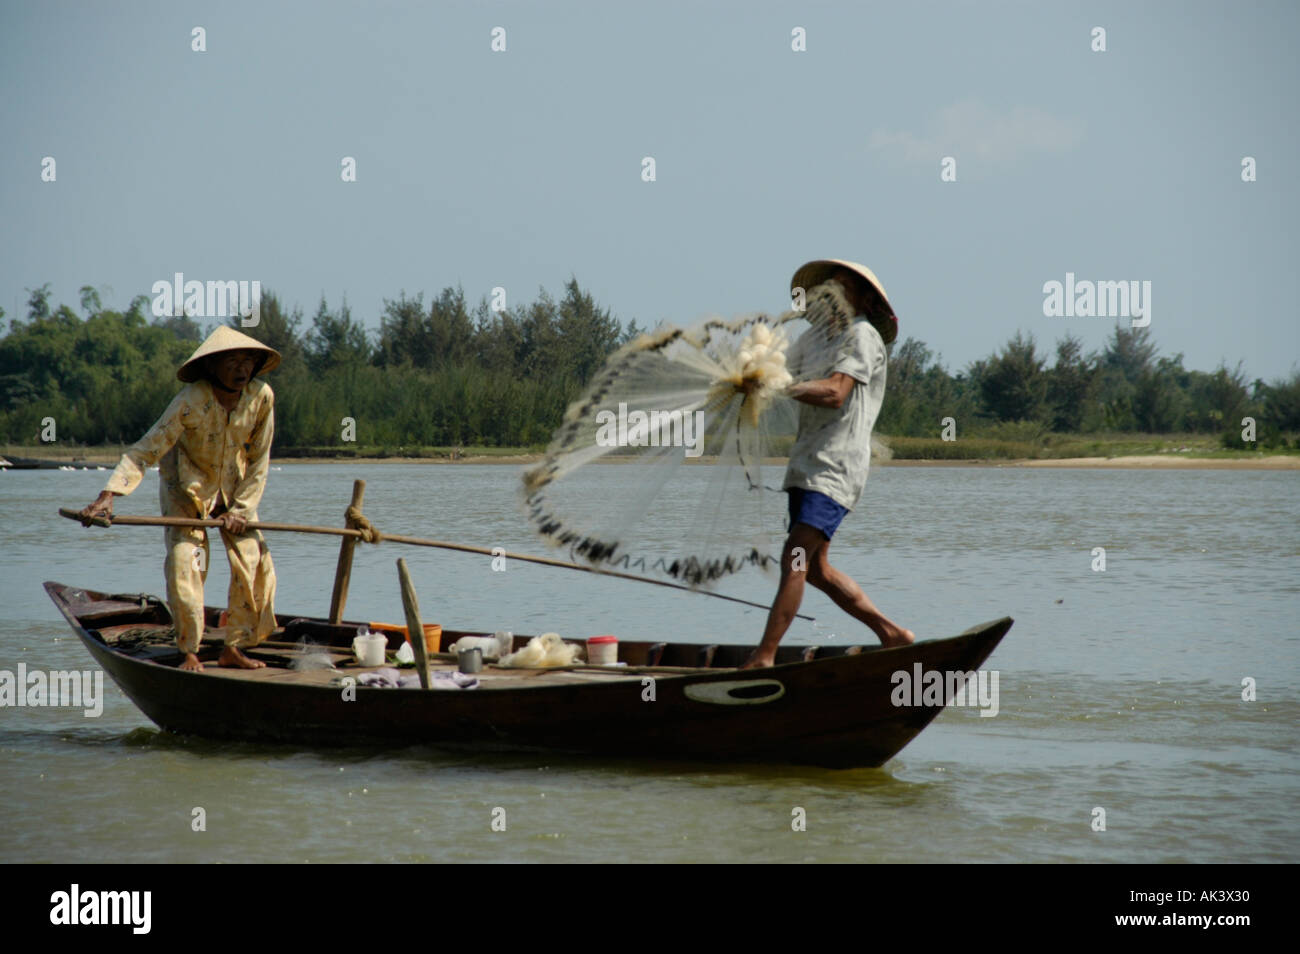 Fisherman with net and boat